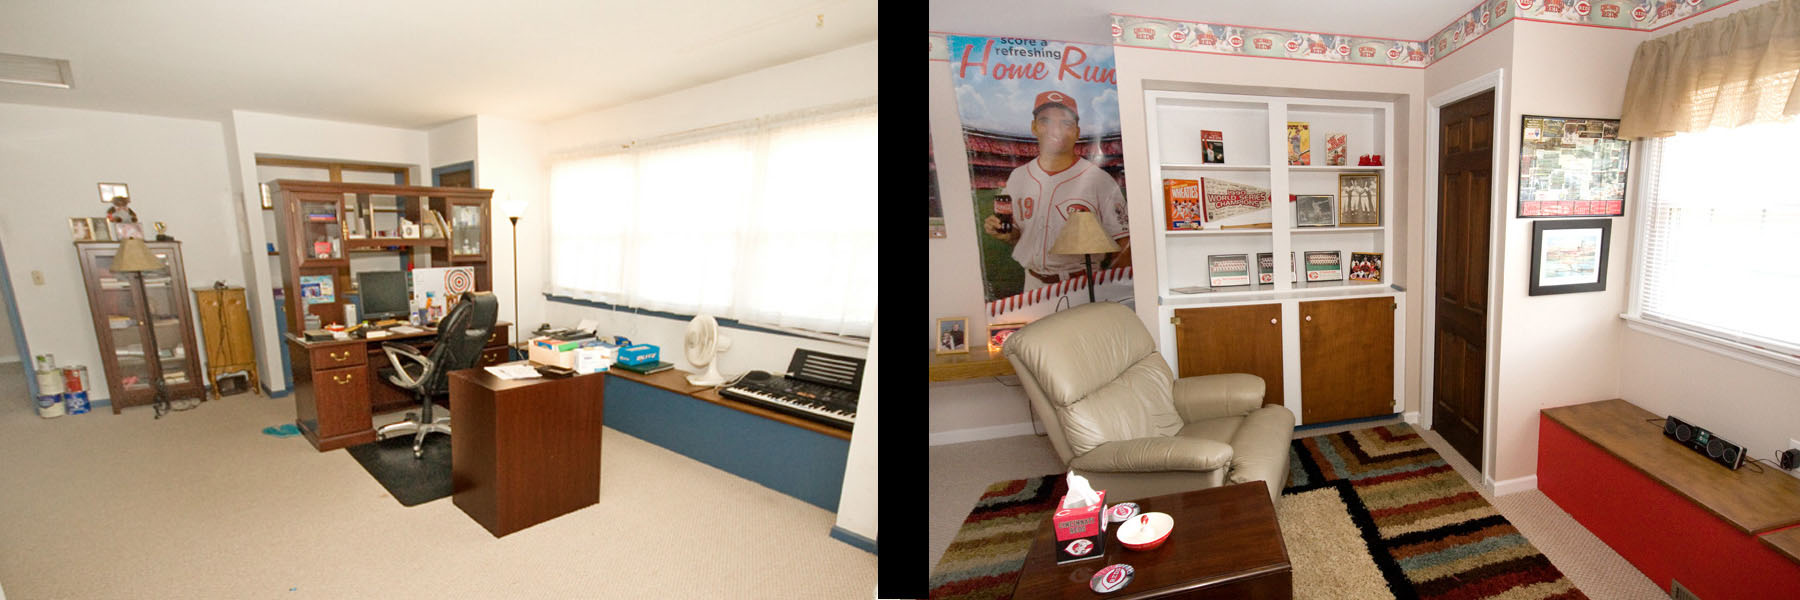 before after seating.jpg